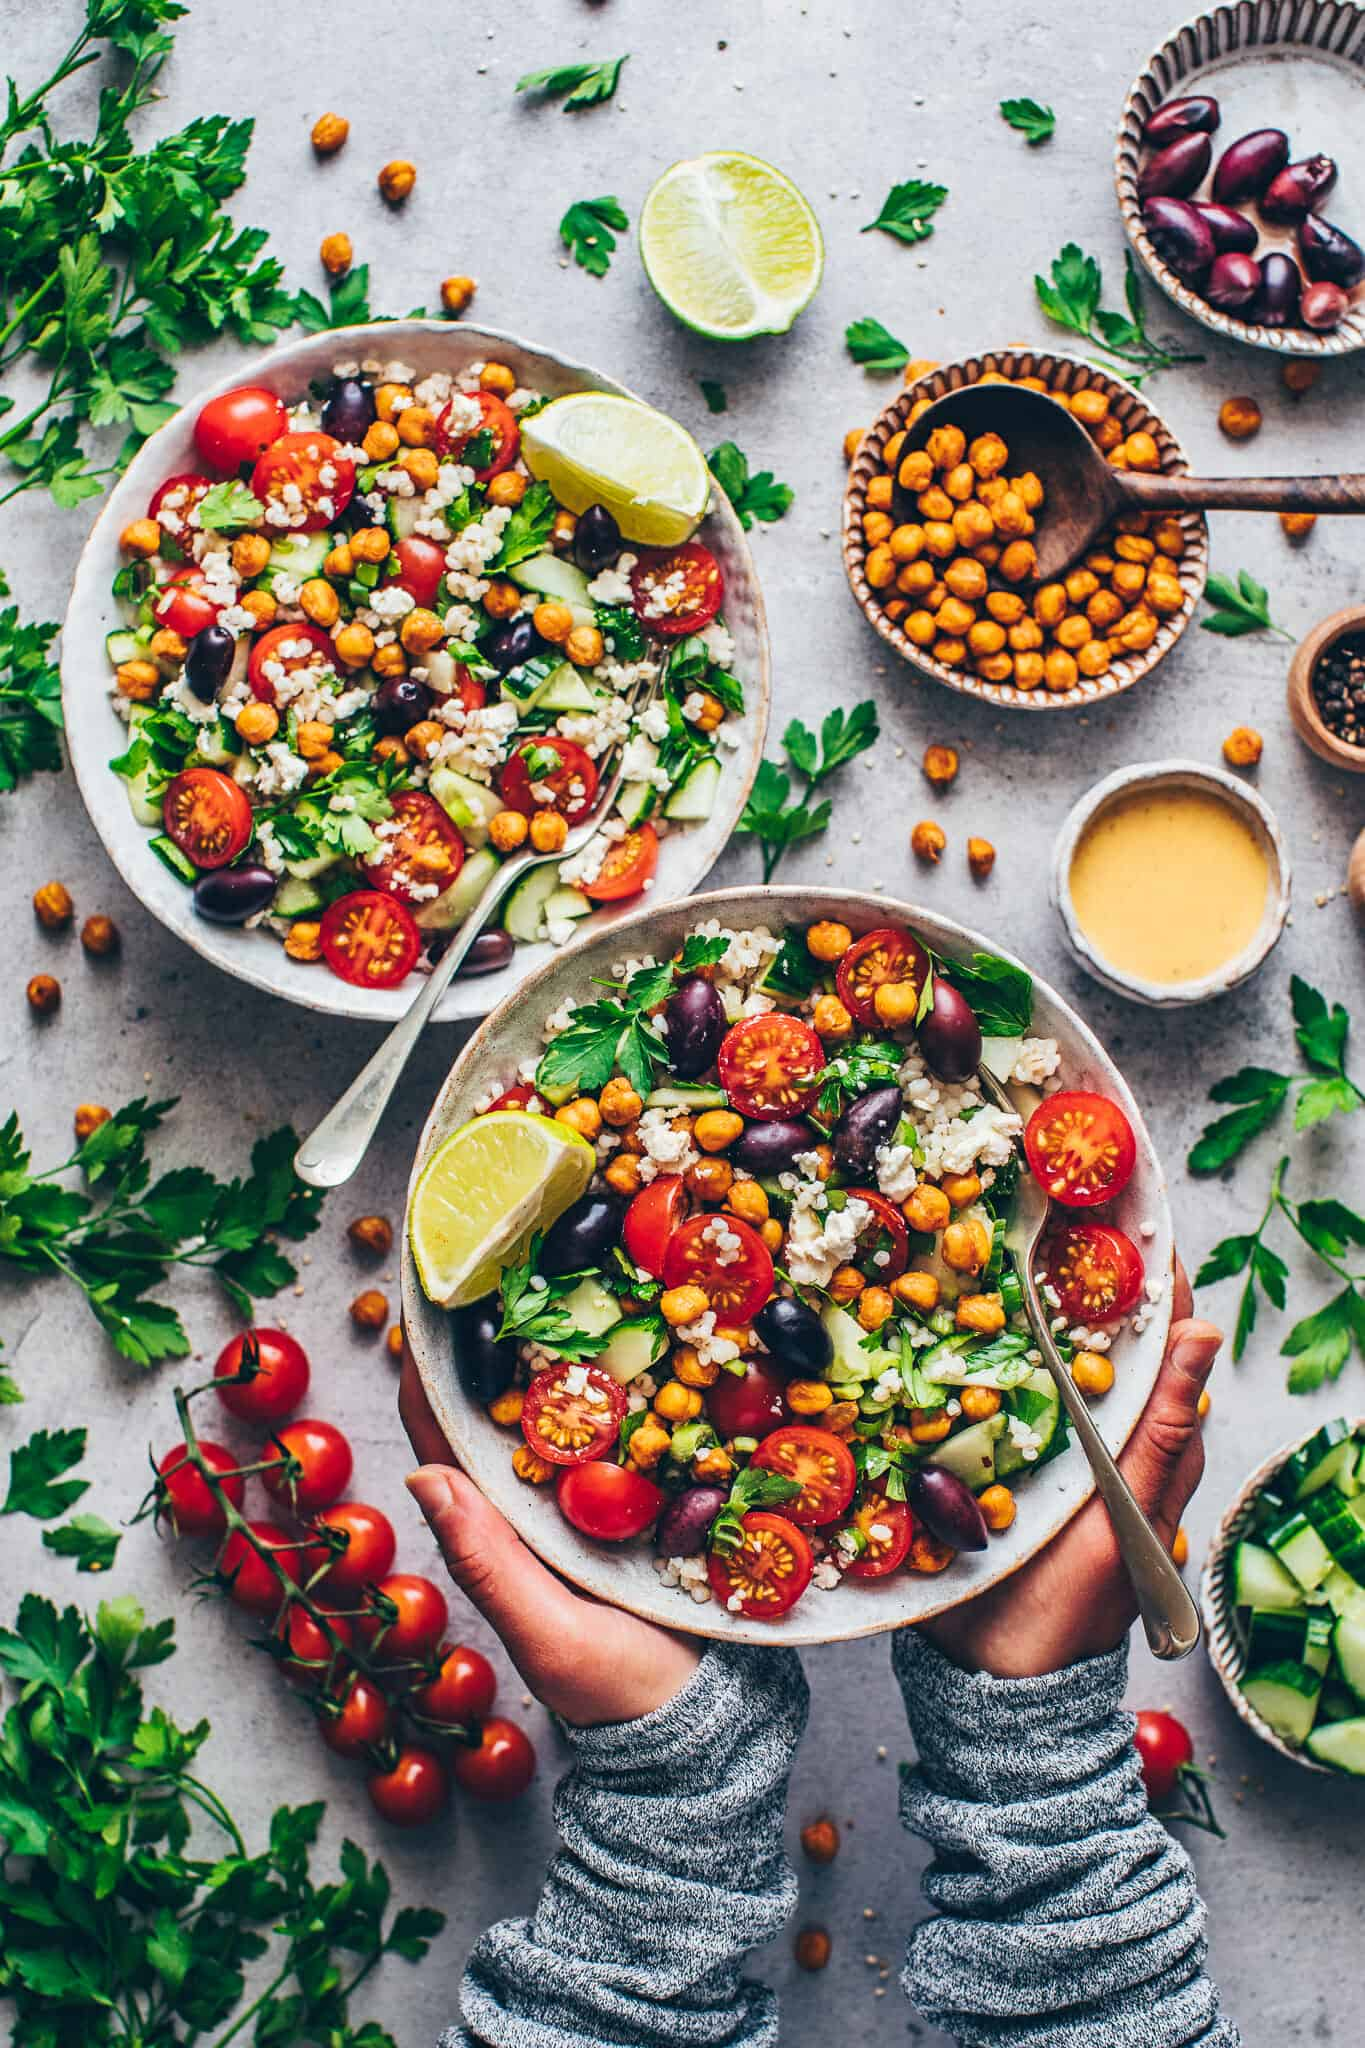 Mediterranean Chickpea Salad with Tahini Dressing, vegetables and crispy roasted chickpeas